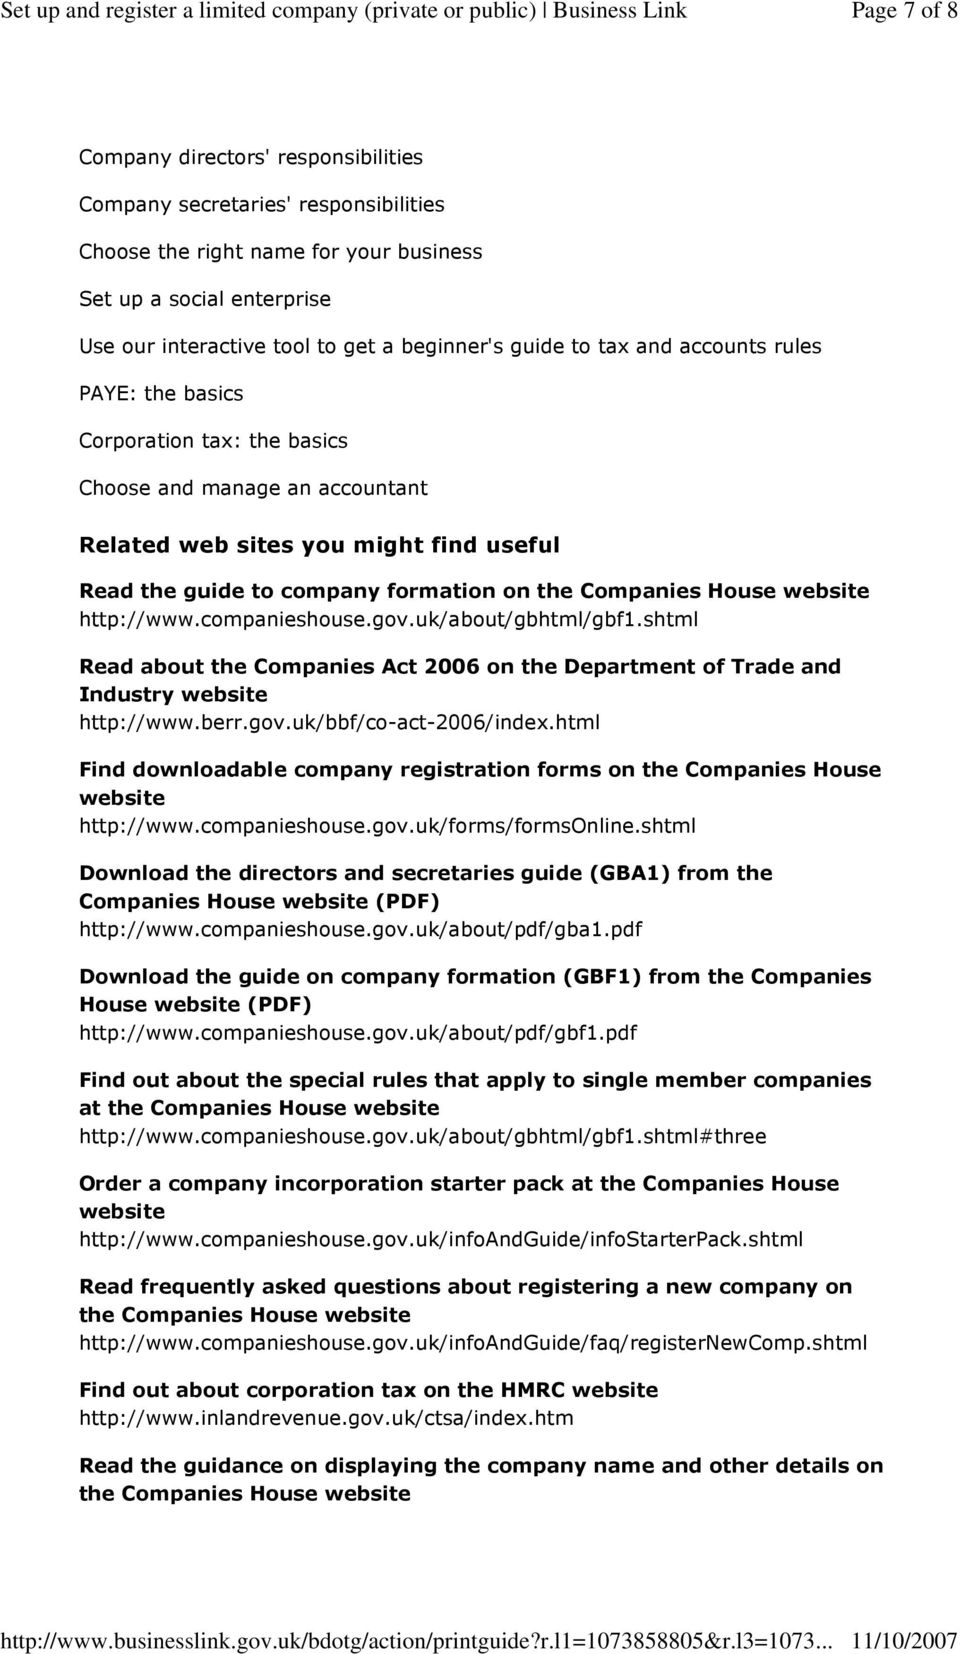 Companies House website http://www.companieshouse.gov.uk/about/gbhtml/gbf1.shtml Read about the Companies Act 2006 on the Department of Trade and Industry website http://www.berr.gov.uk/bbf/co-act-2006/index.